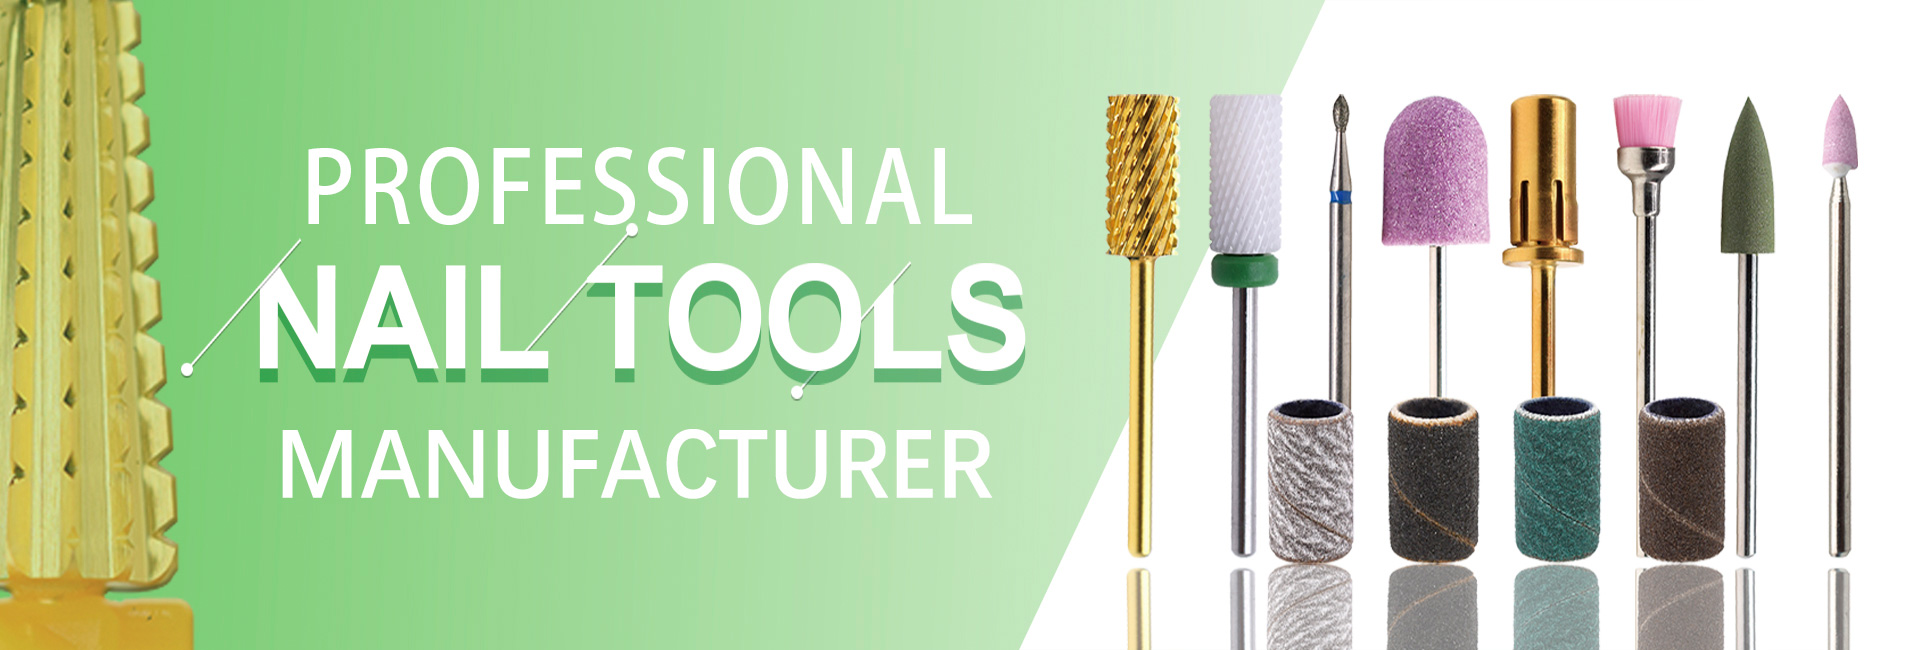 Professional Nail Tools